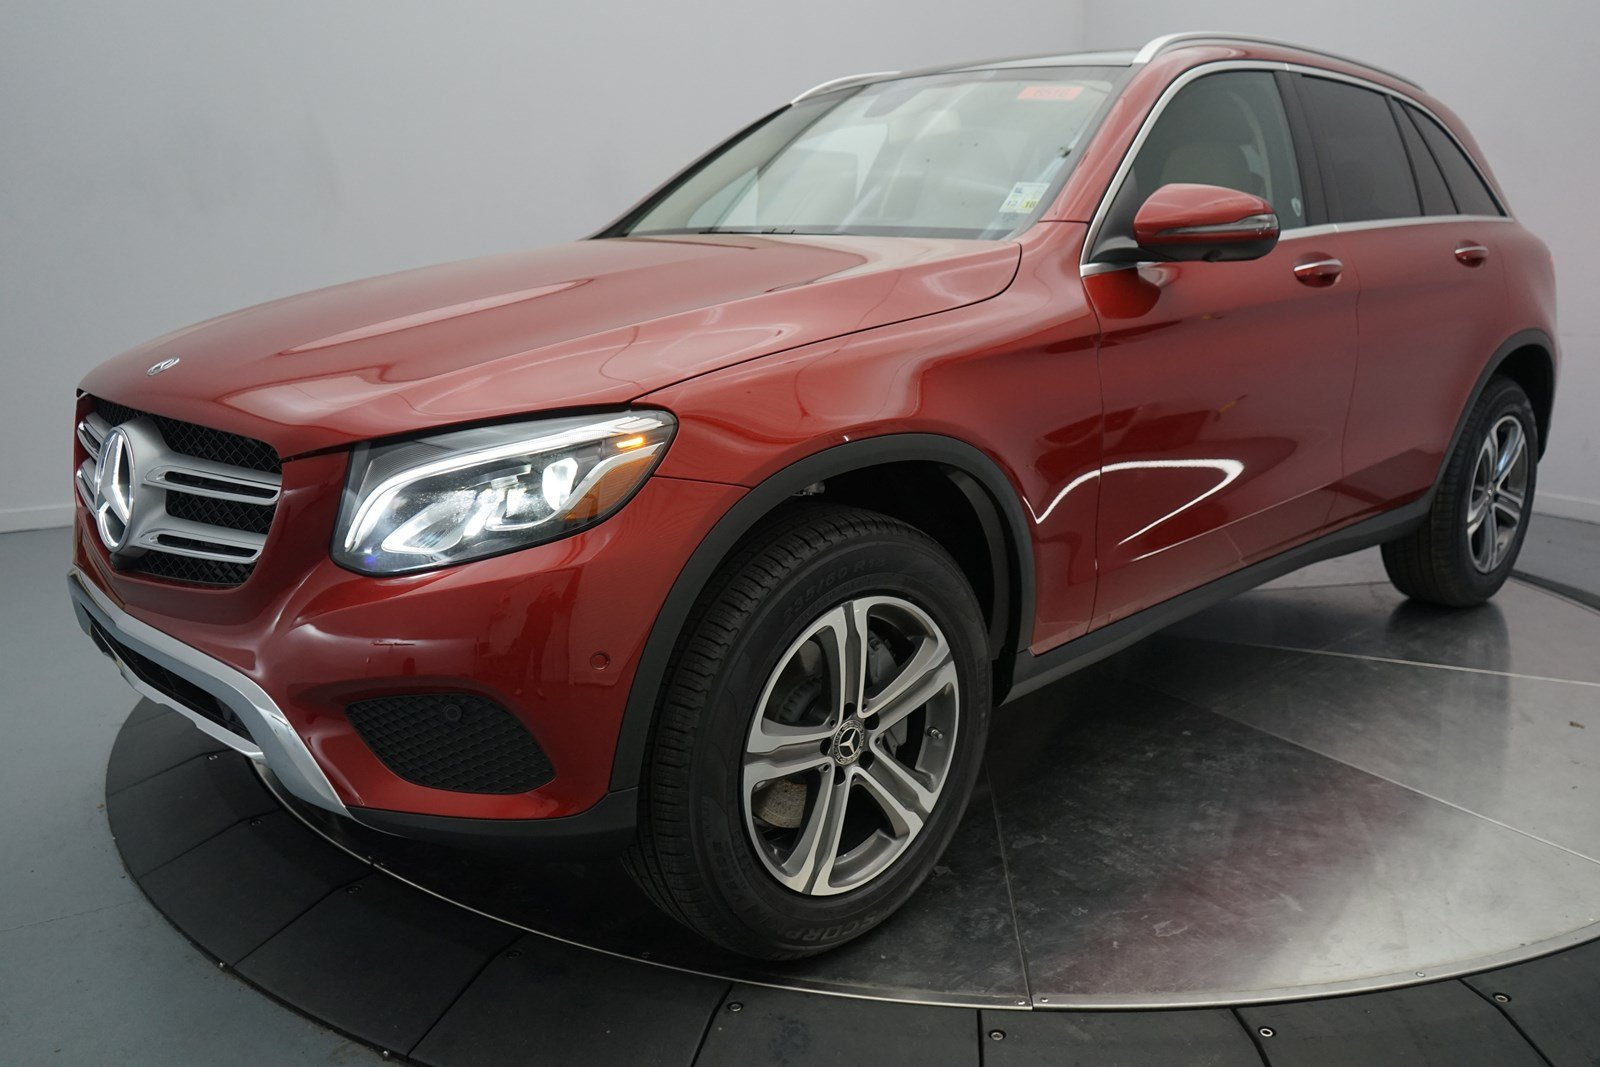 New 2018 mercedes benz glc glc 300 suv in shreveport 6516 for Mercedes benz glc 300 accessories